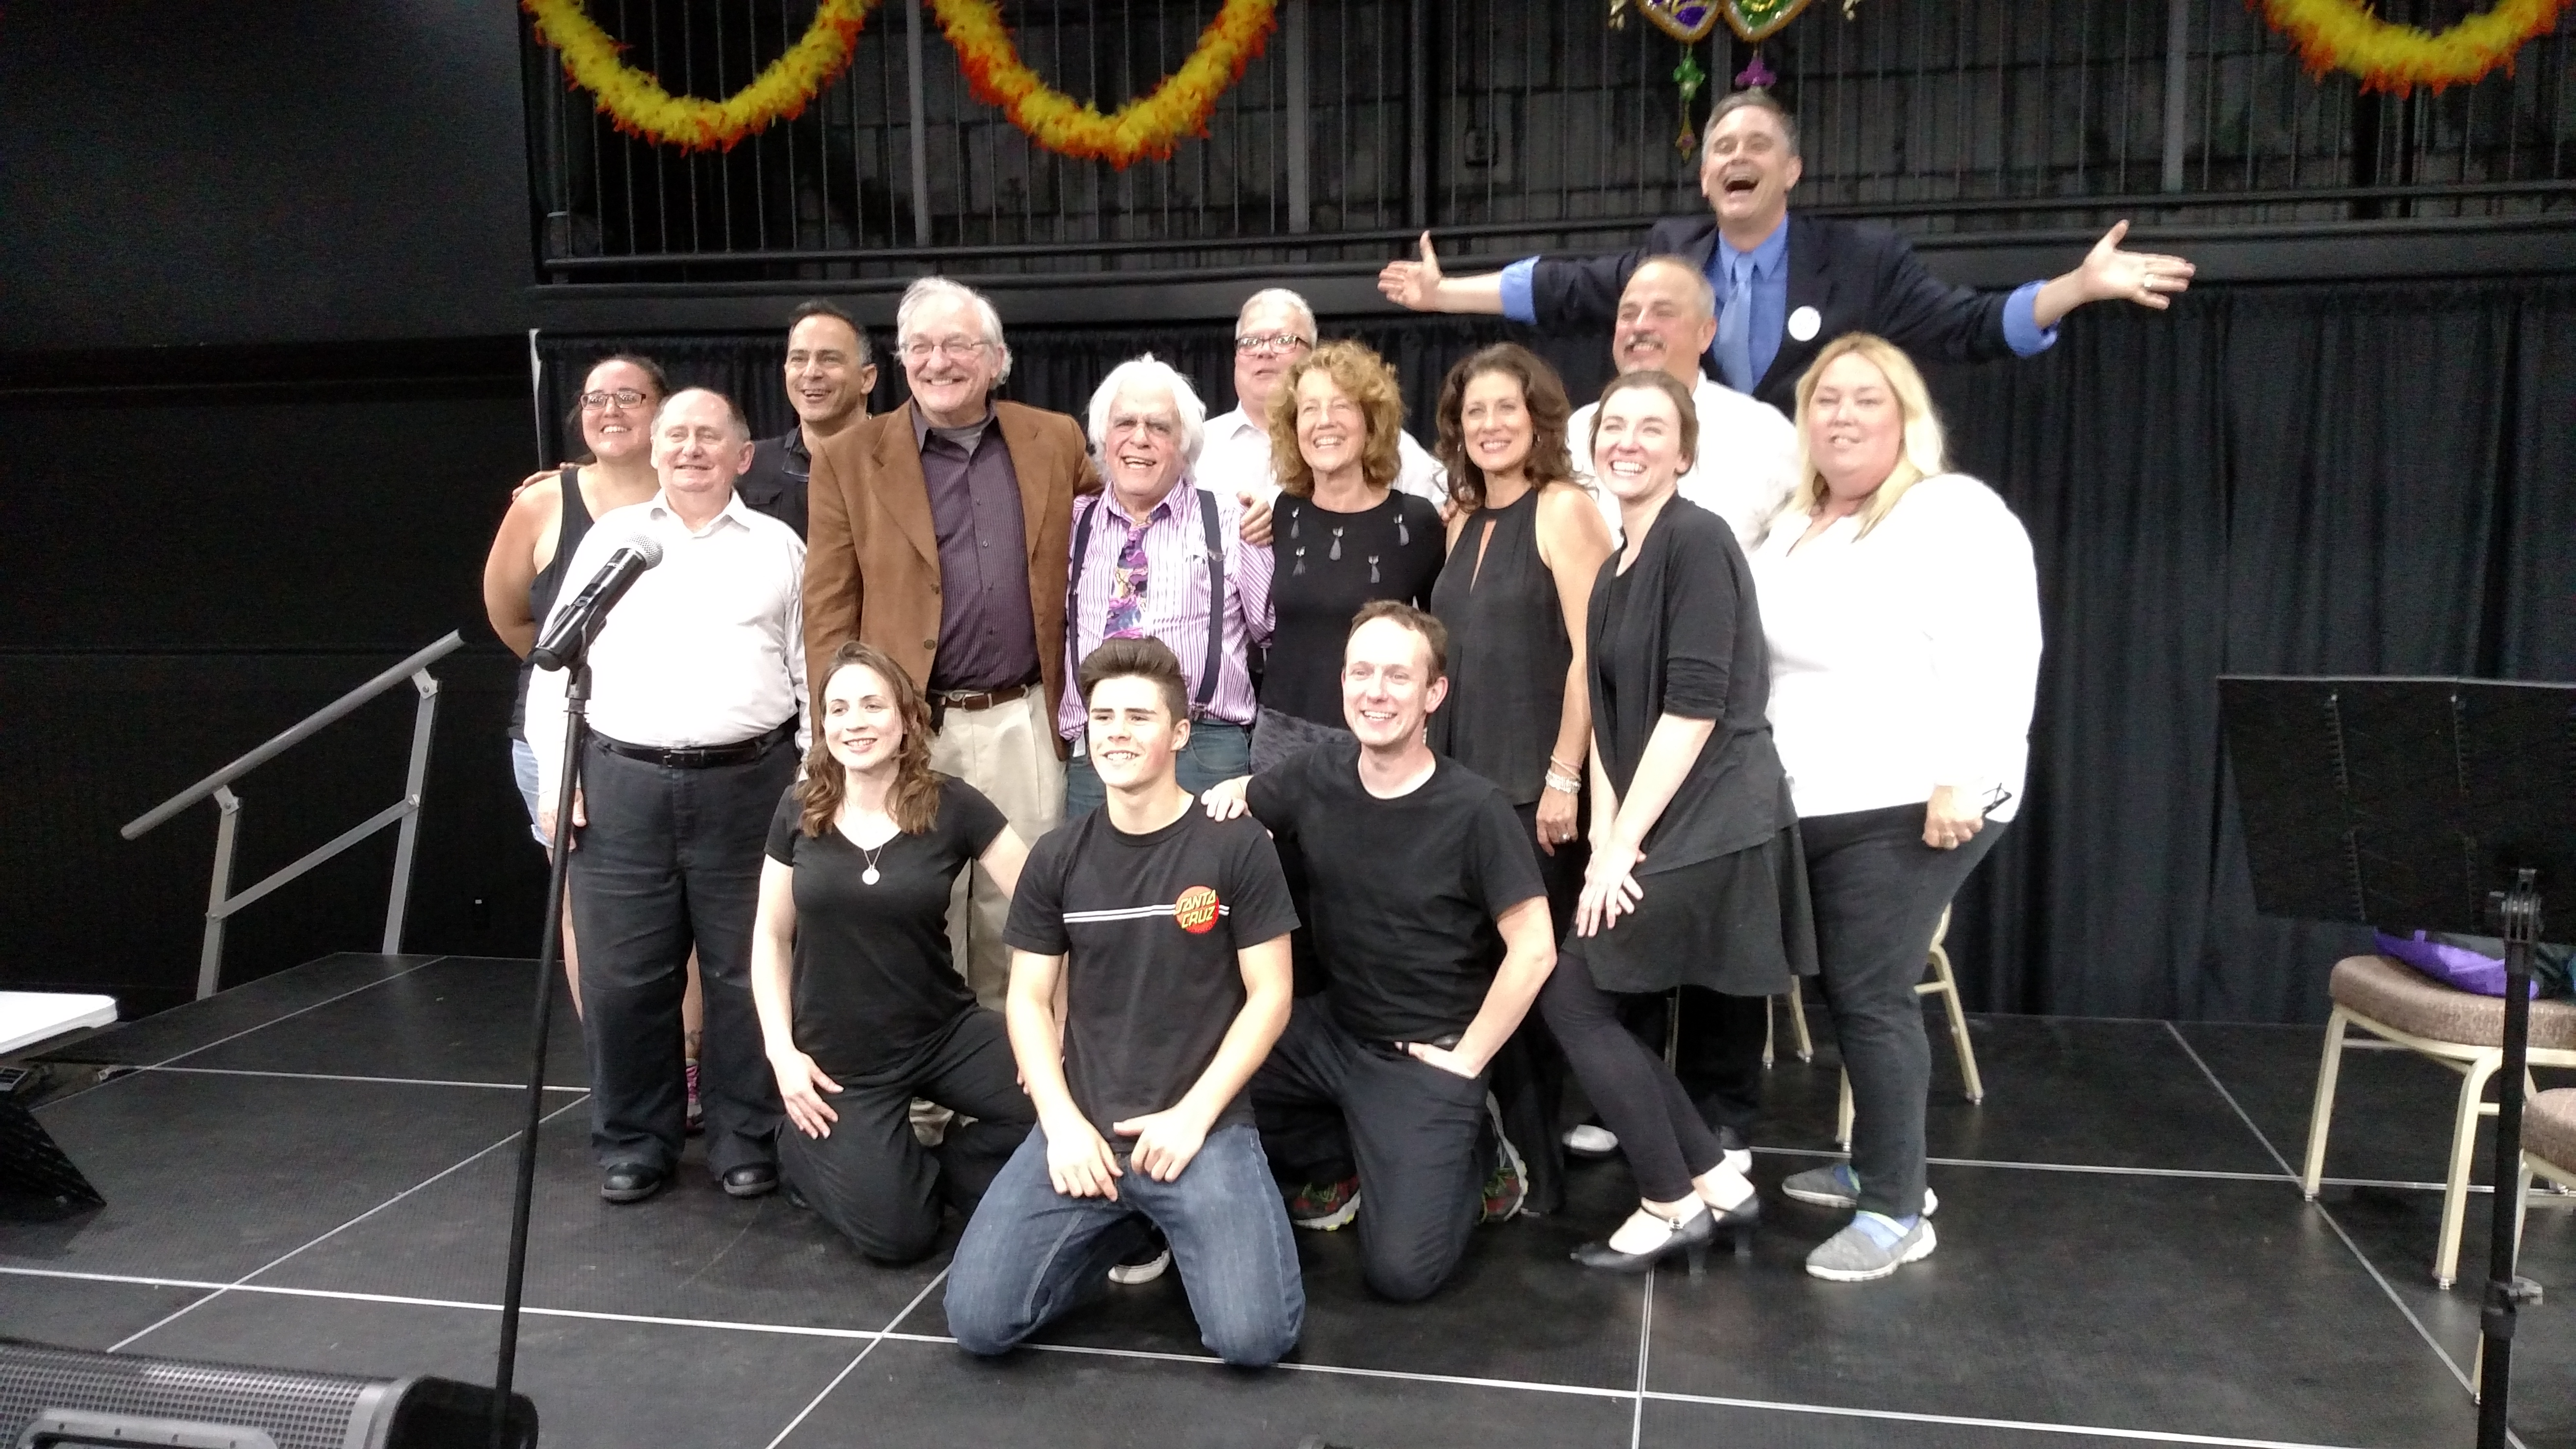 Gretna Welcomes a New Festival with the Mainstreet New Music Theatre Festival